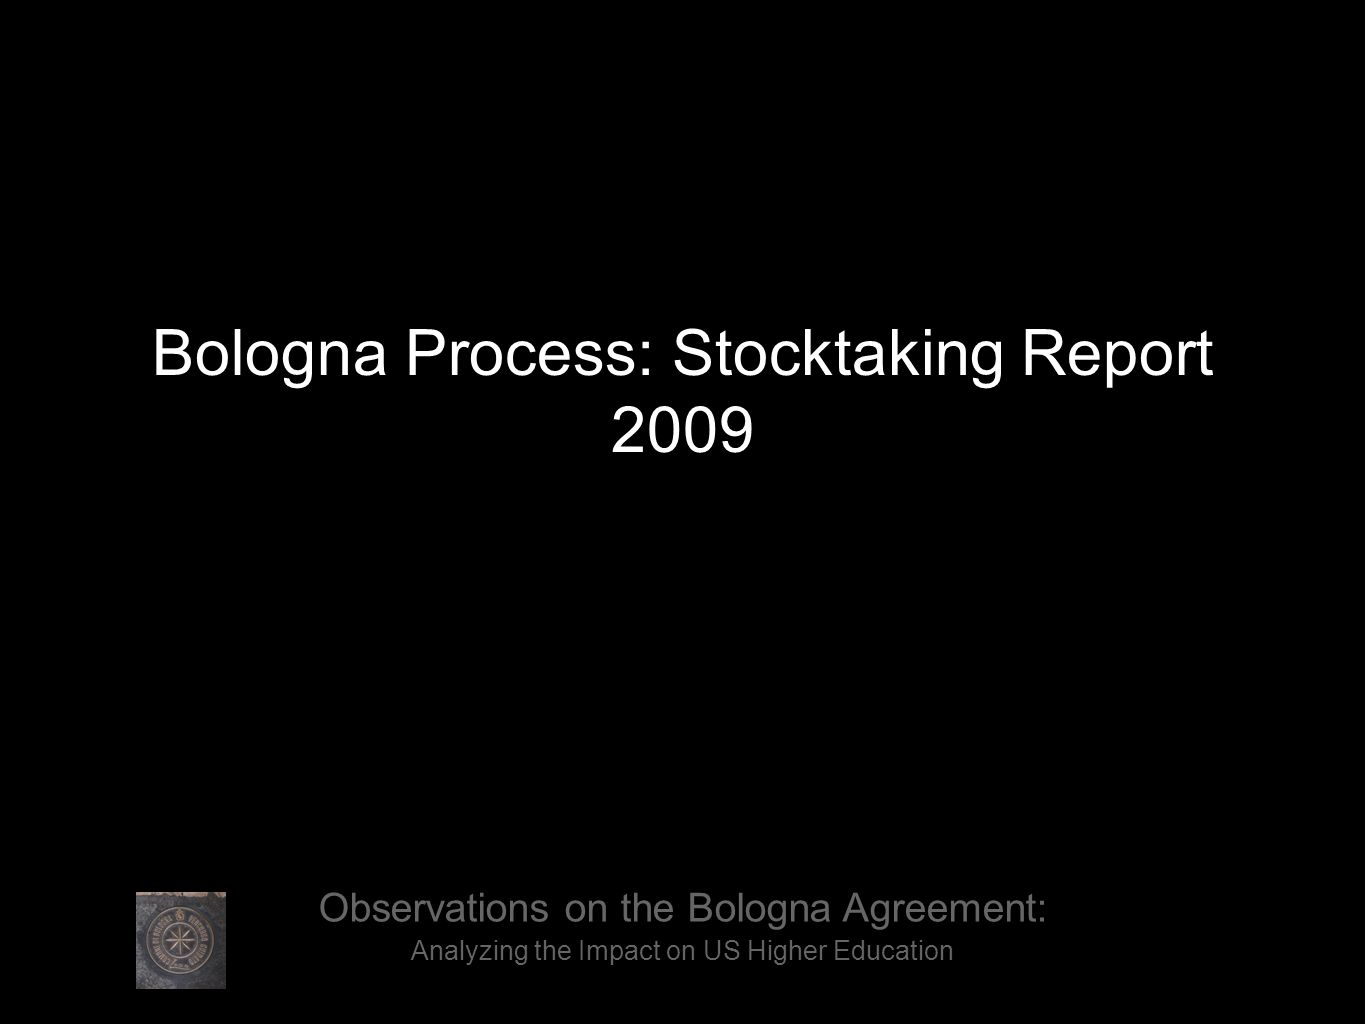 Bologna Process: Stocktaking Report 2009 Observations on the Bologna Agreement: Analyzing the Impact on US Higher Education